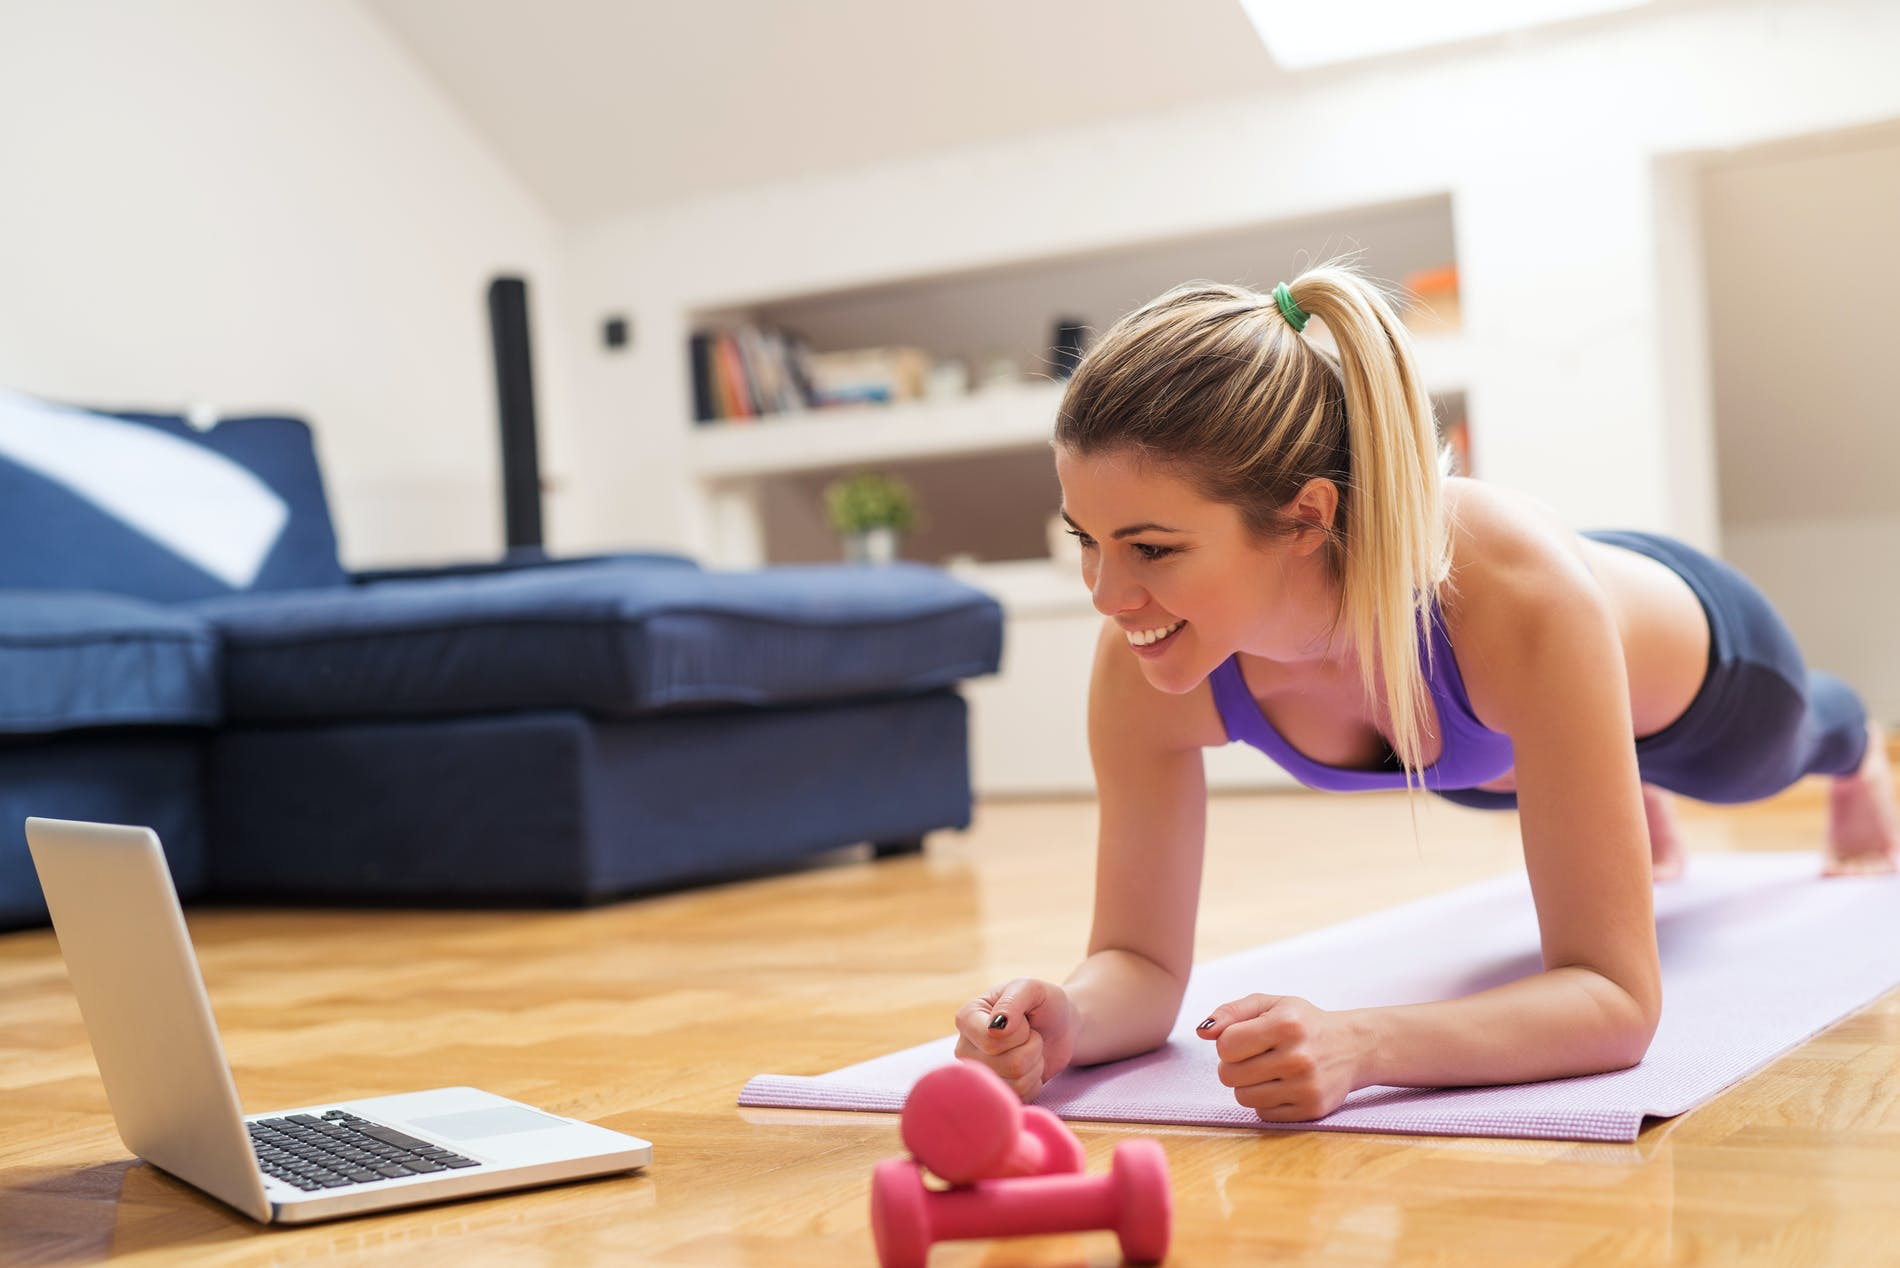 at-home-fitness-training-area.jpg